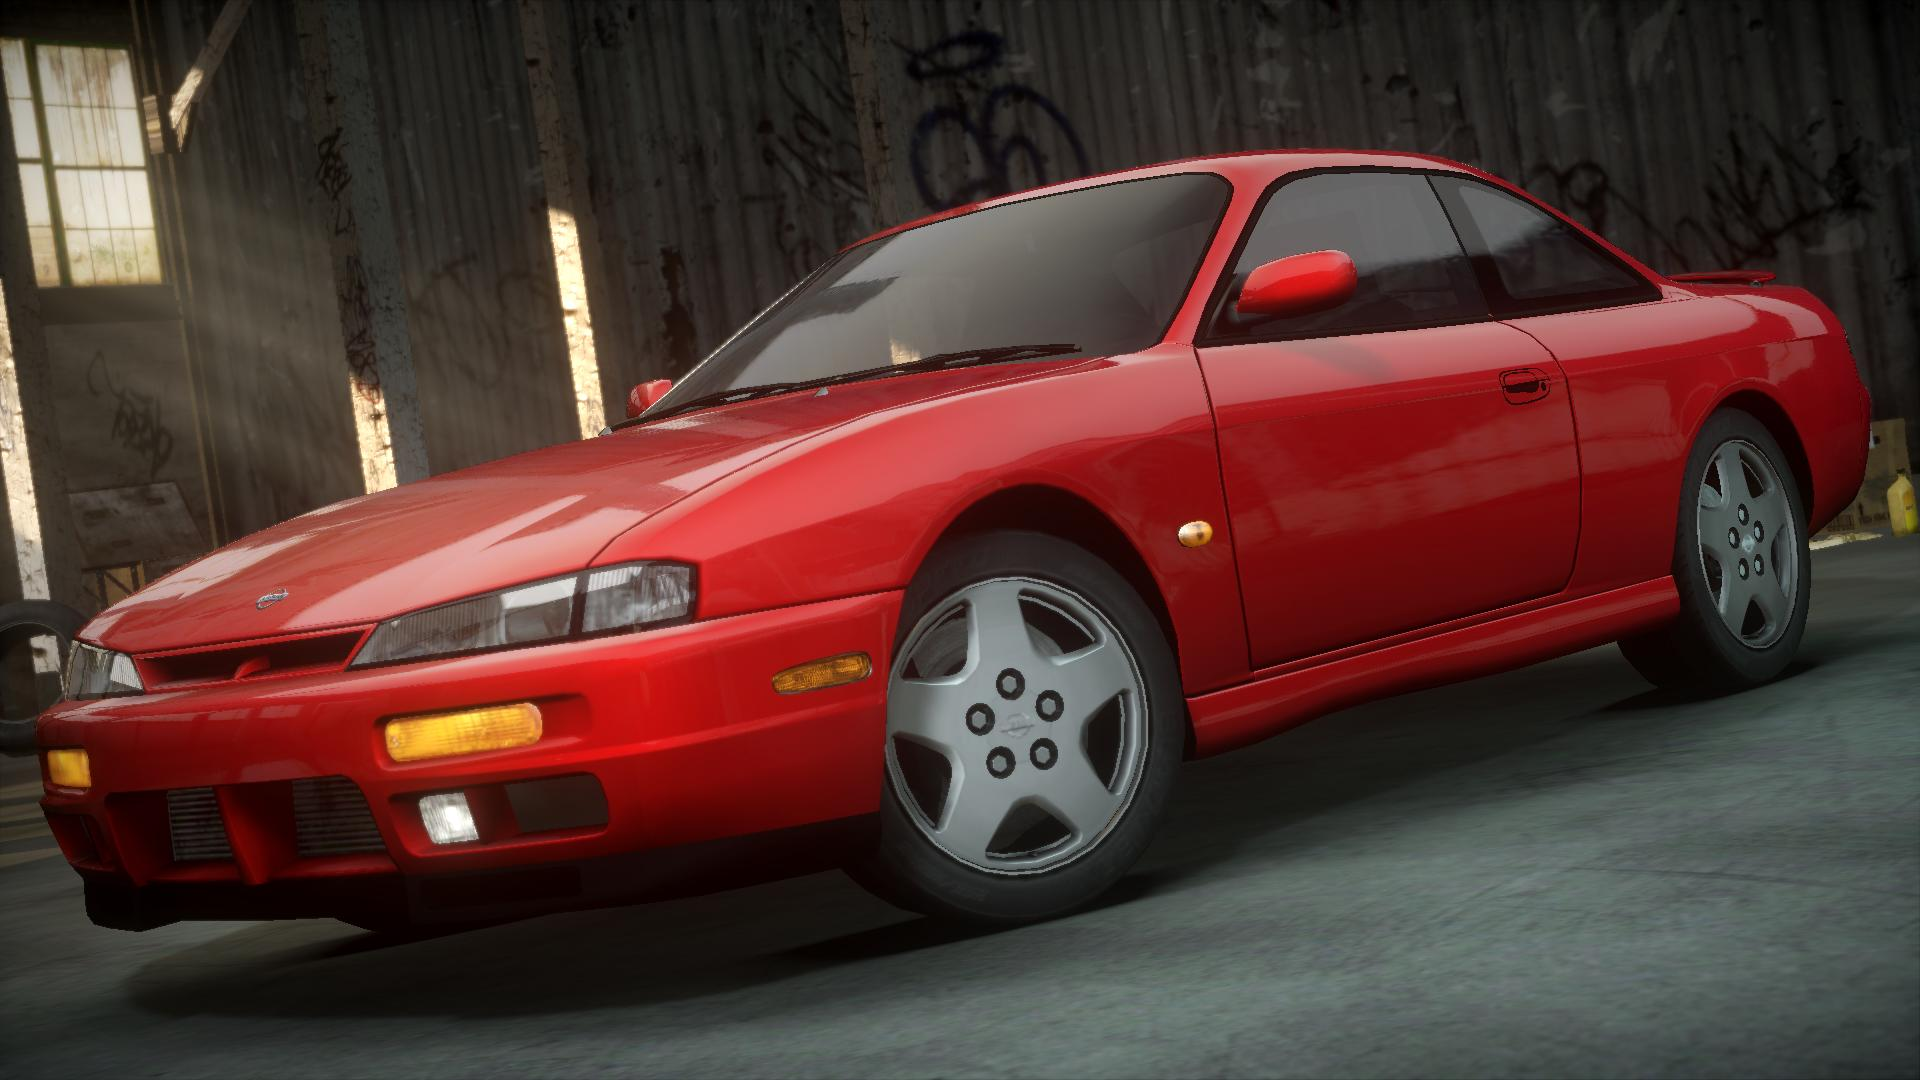 nissan 200sx s14 need for speed wiki fandom powered. Black Bedroom Furniture Sets. Home Design Ideas